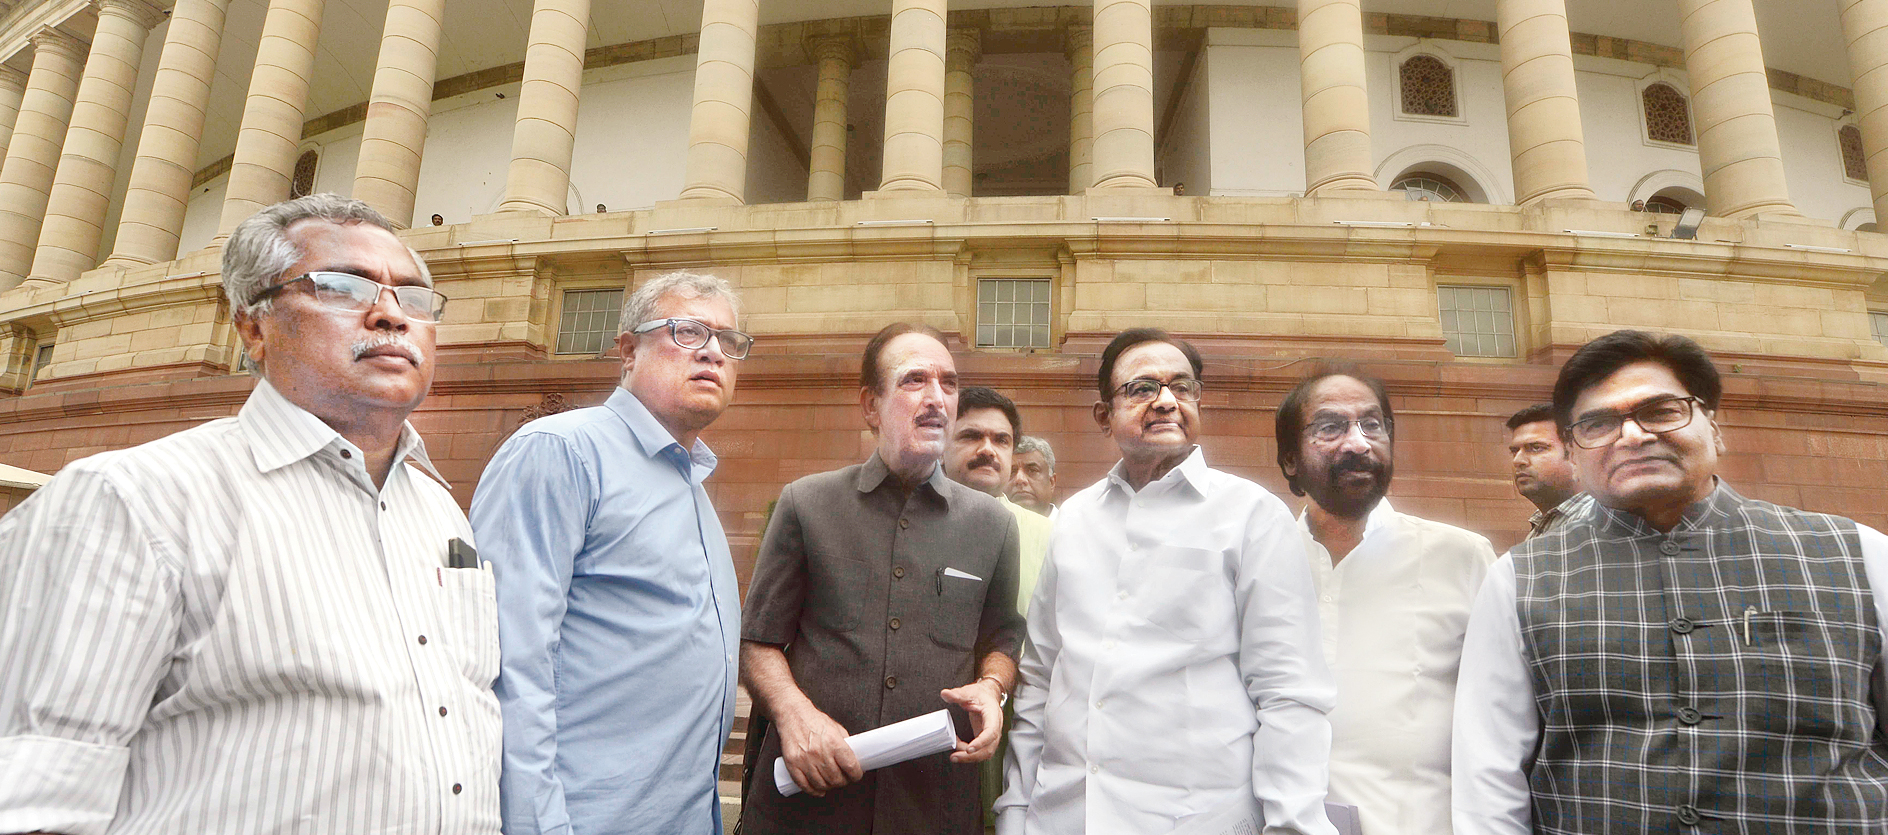 Congress leaders Ghulam Nabi Azad, P Chidambaram, Trinamul leader Derek O'Brien, Samajwadi MP Ram Gopal Yadav and others in New Delhi on Monday.